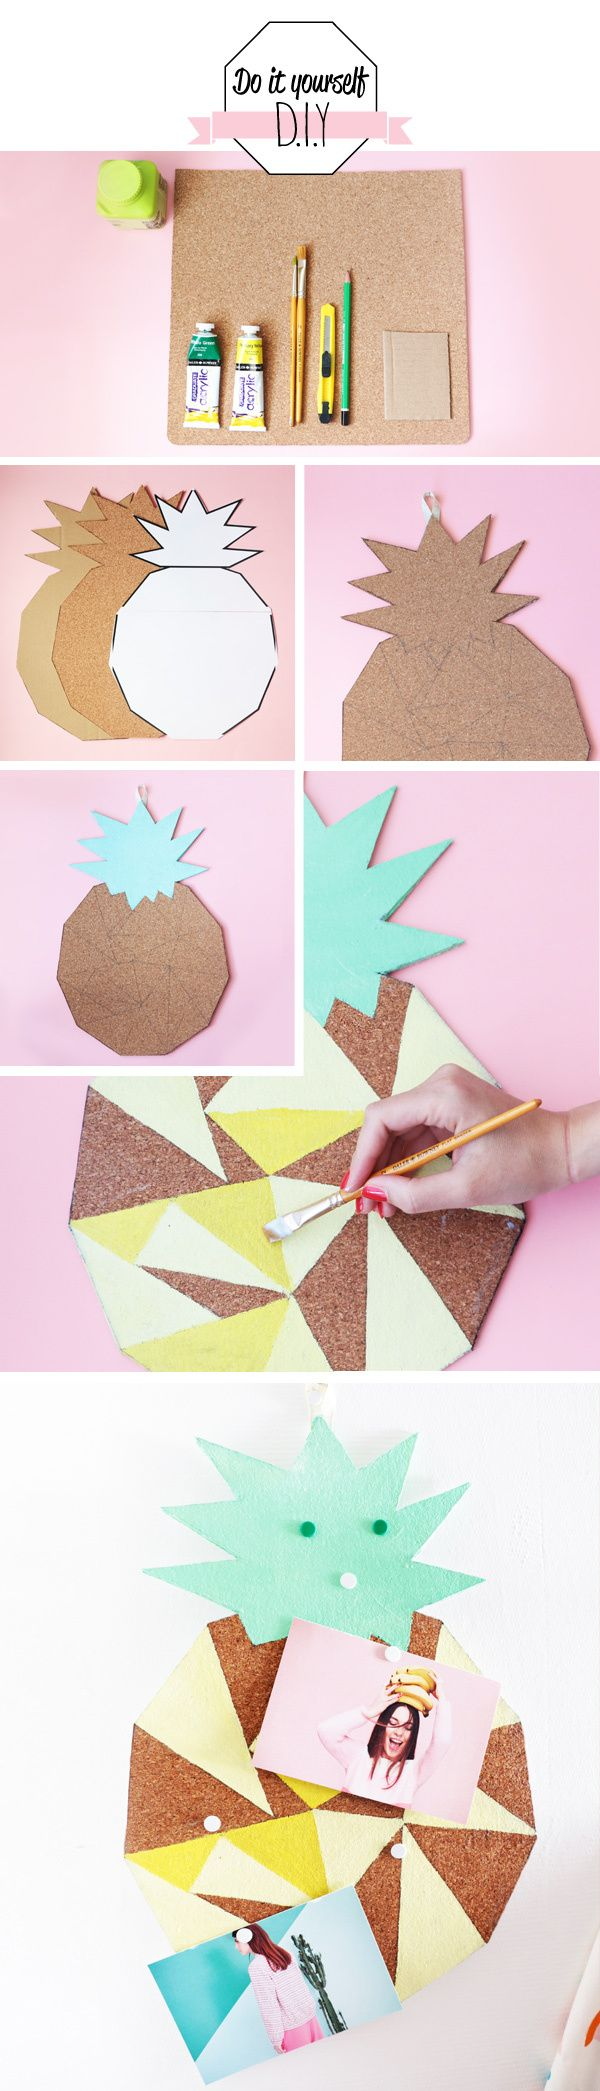 DIY Pineapple Cork Board Tutorial